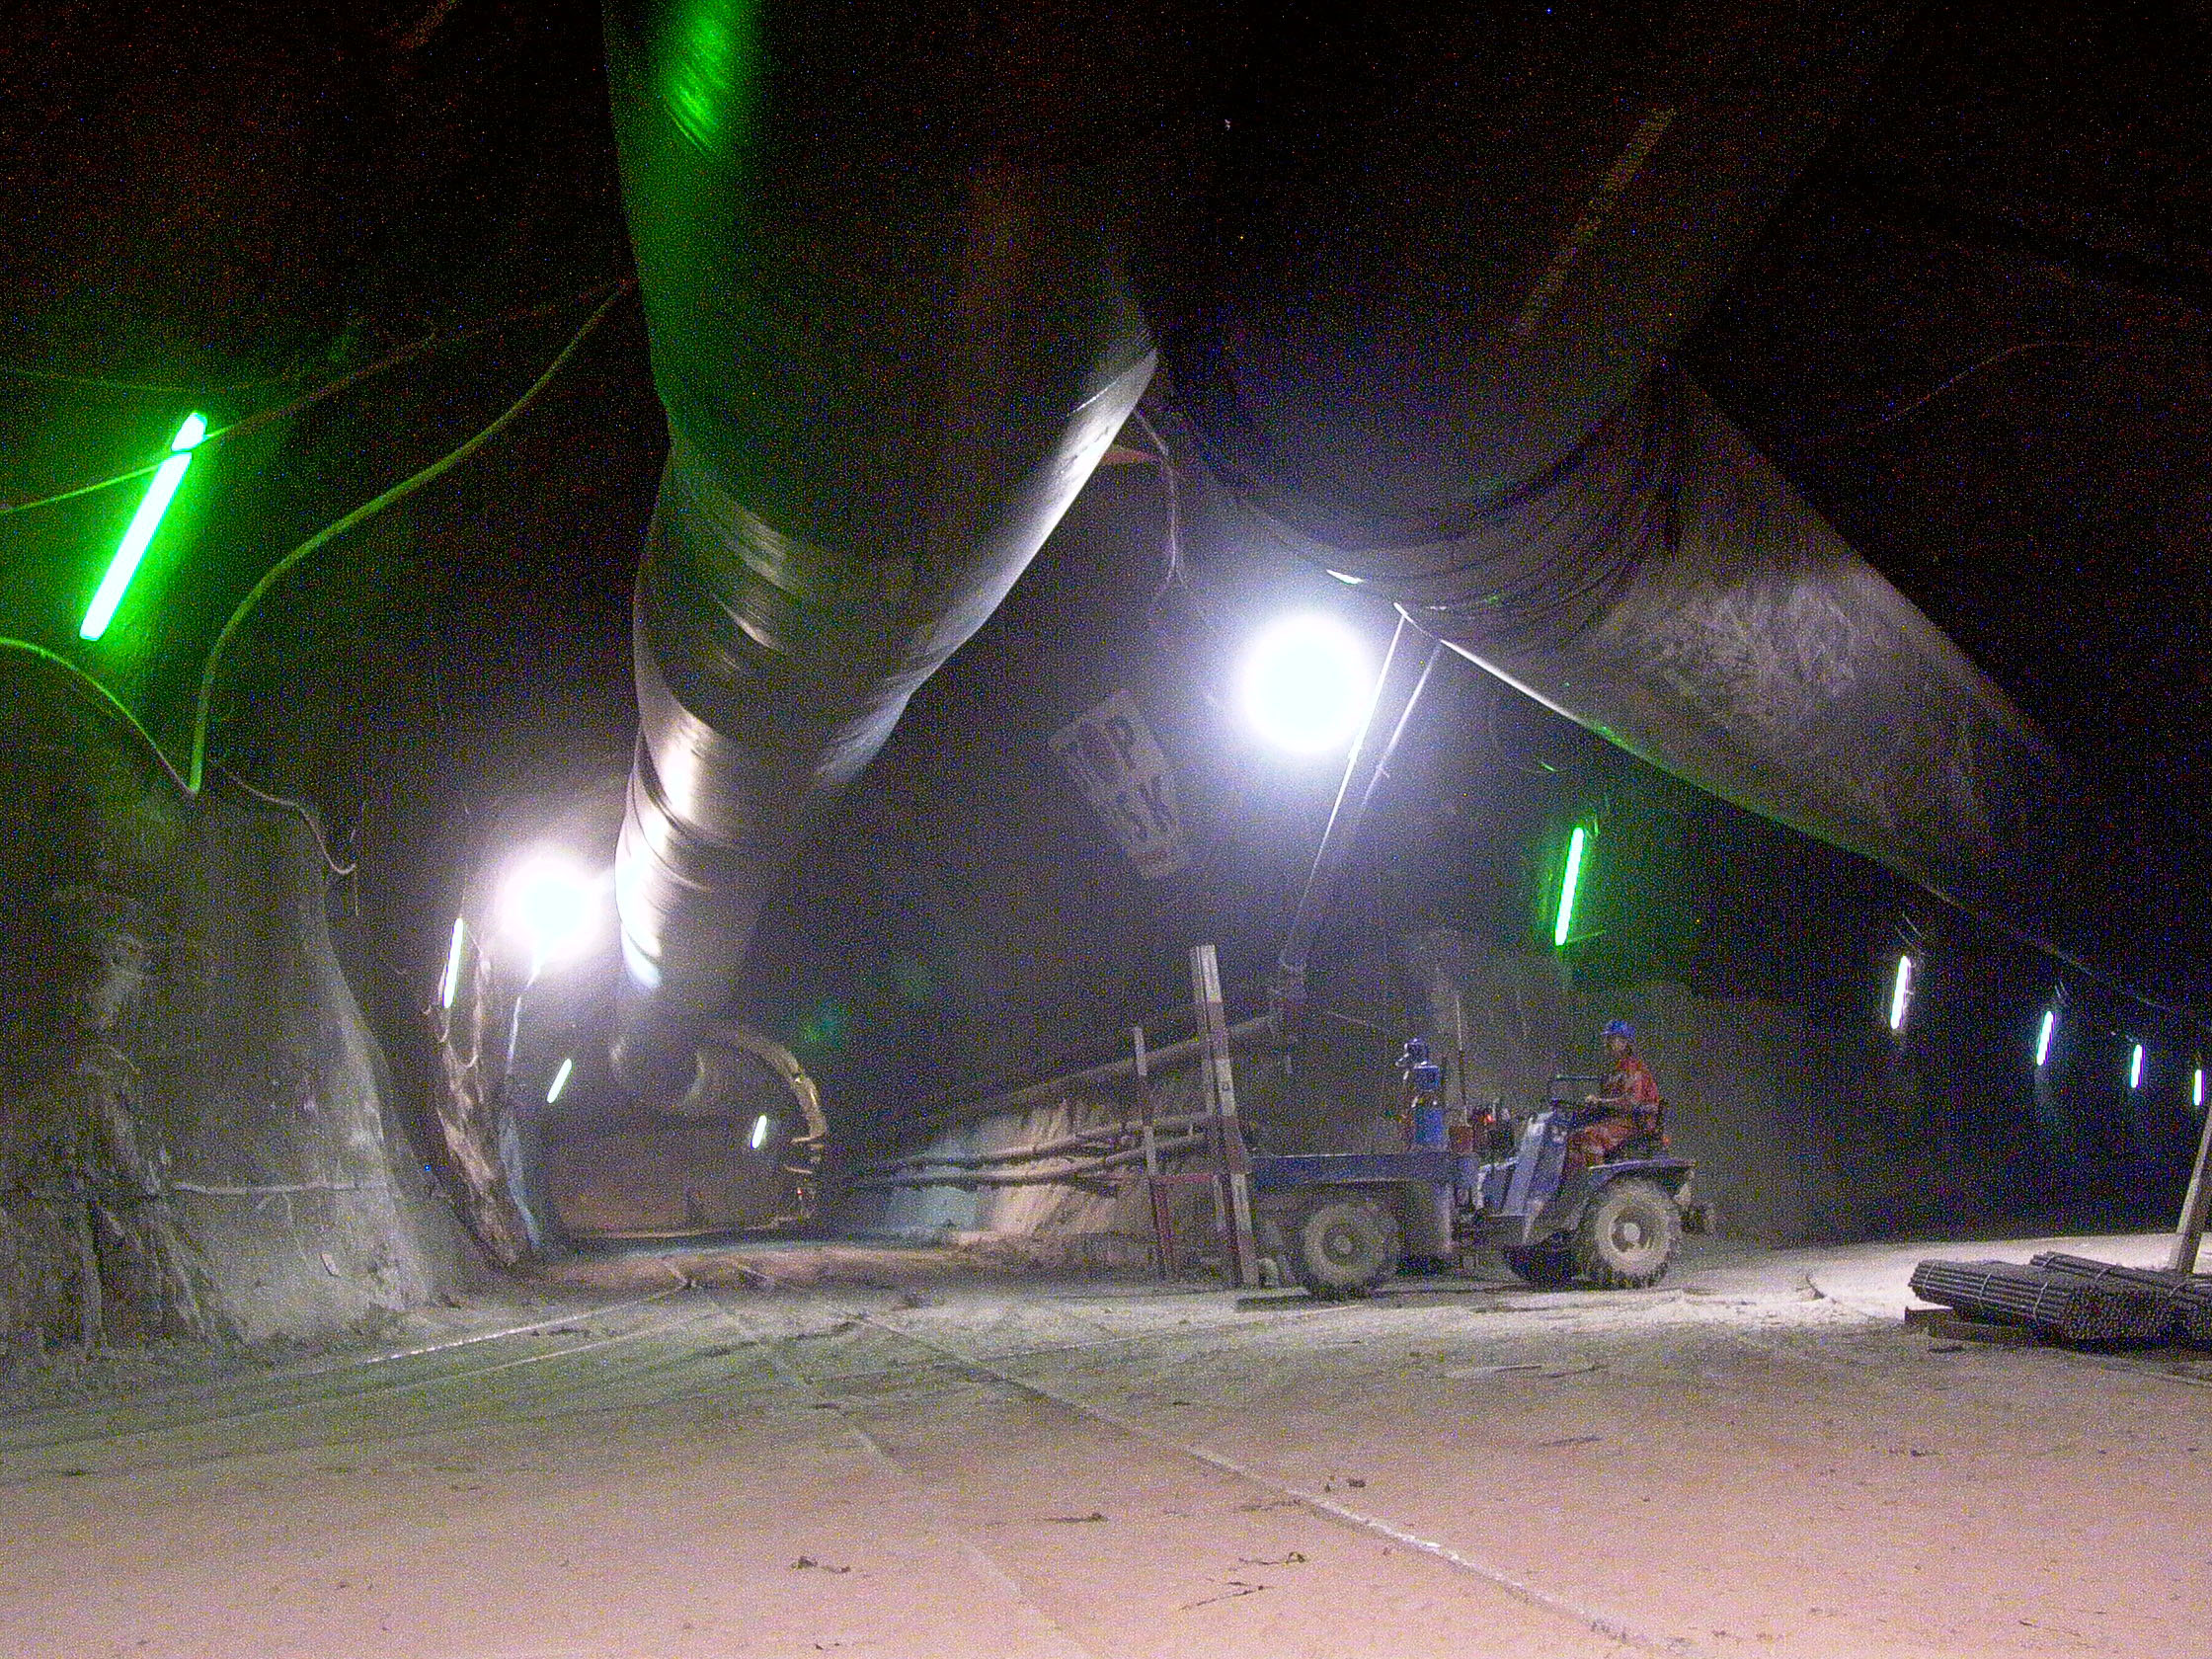 Ventilation tubes at the contruction site in Sedrun, 800 metres deep inside the Gotthard massif.